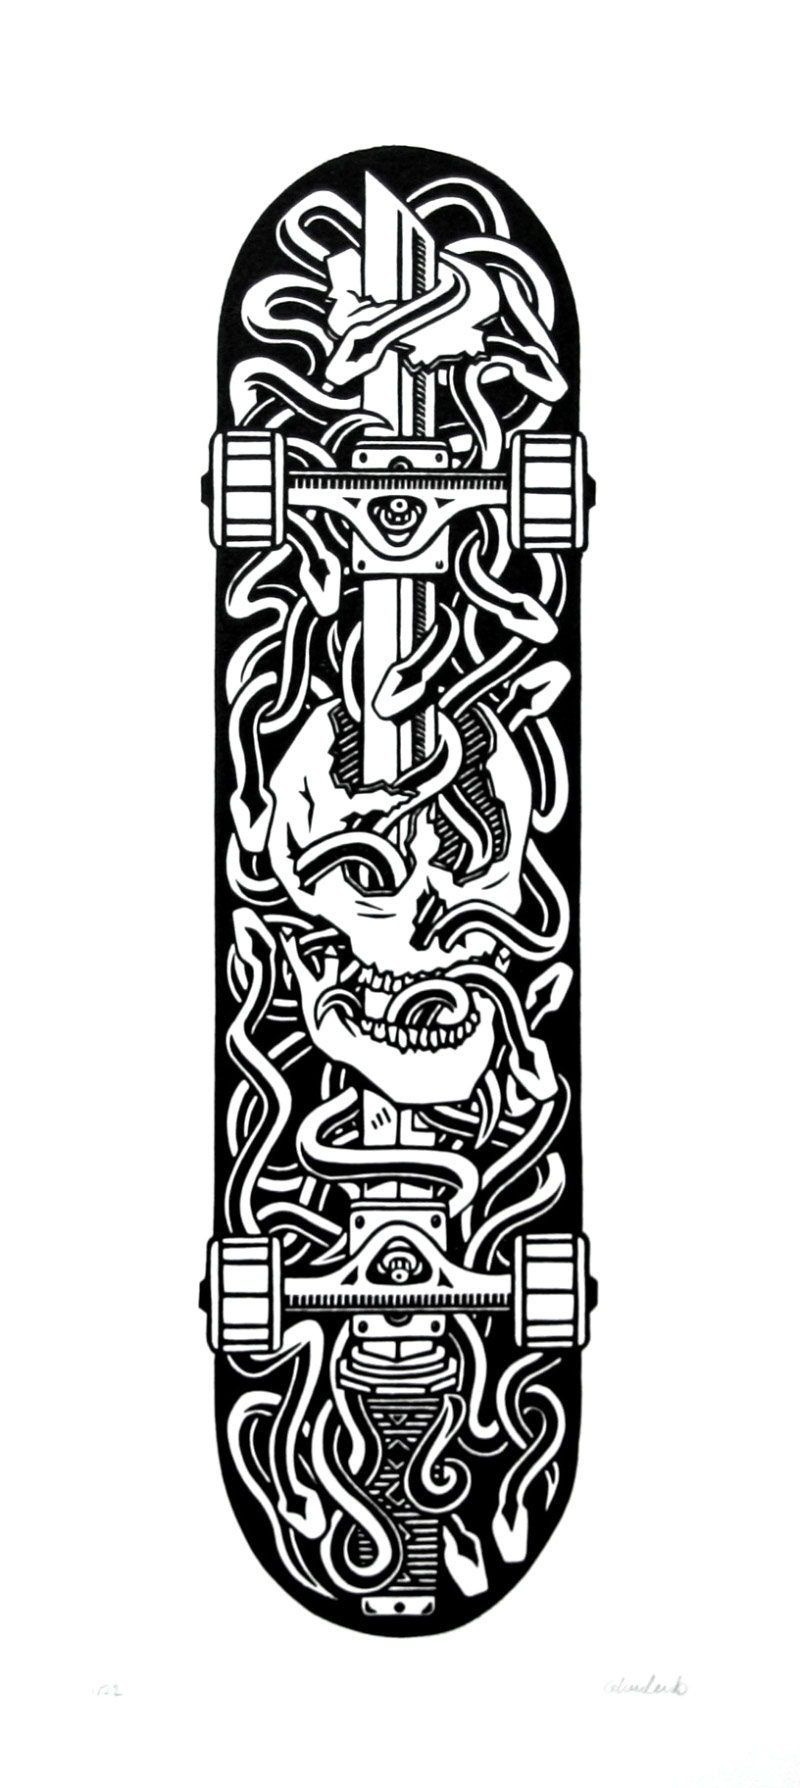 Skateboard with Skull, Sword, and Snakes